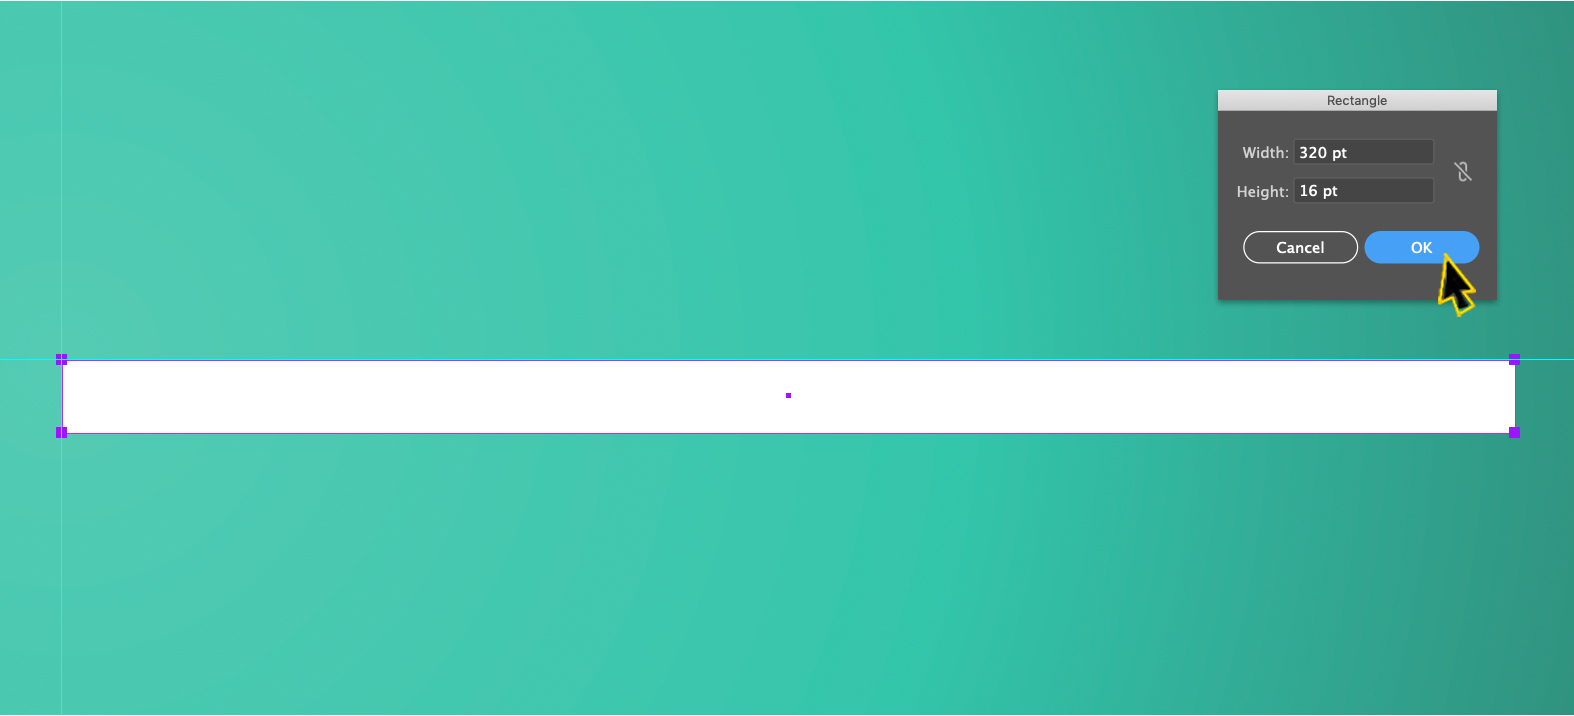 A long white rectangle on a green field in Adobe Illustrator